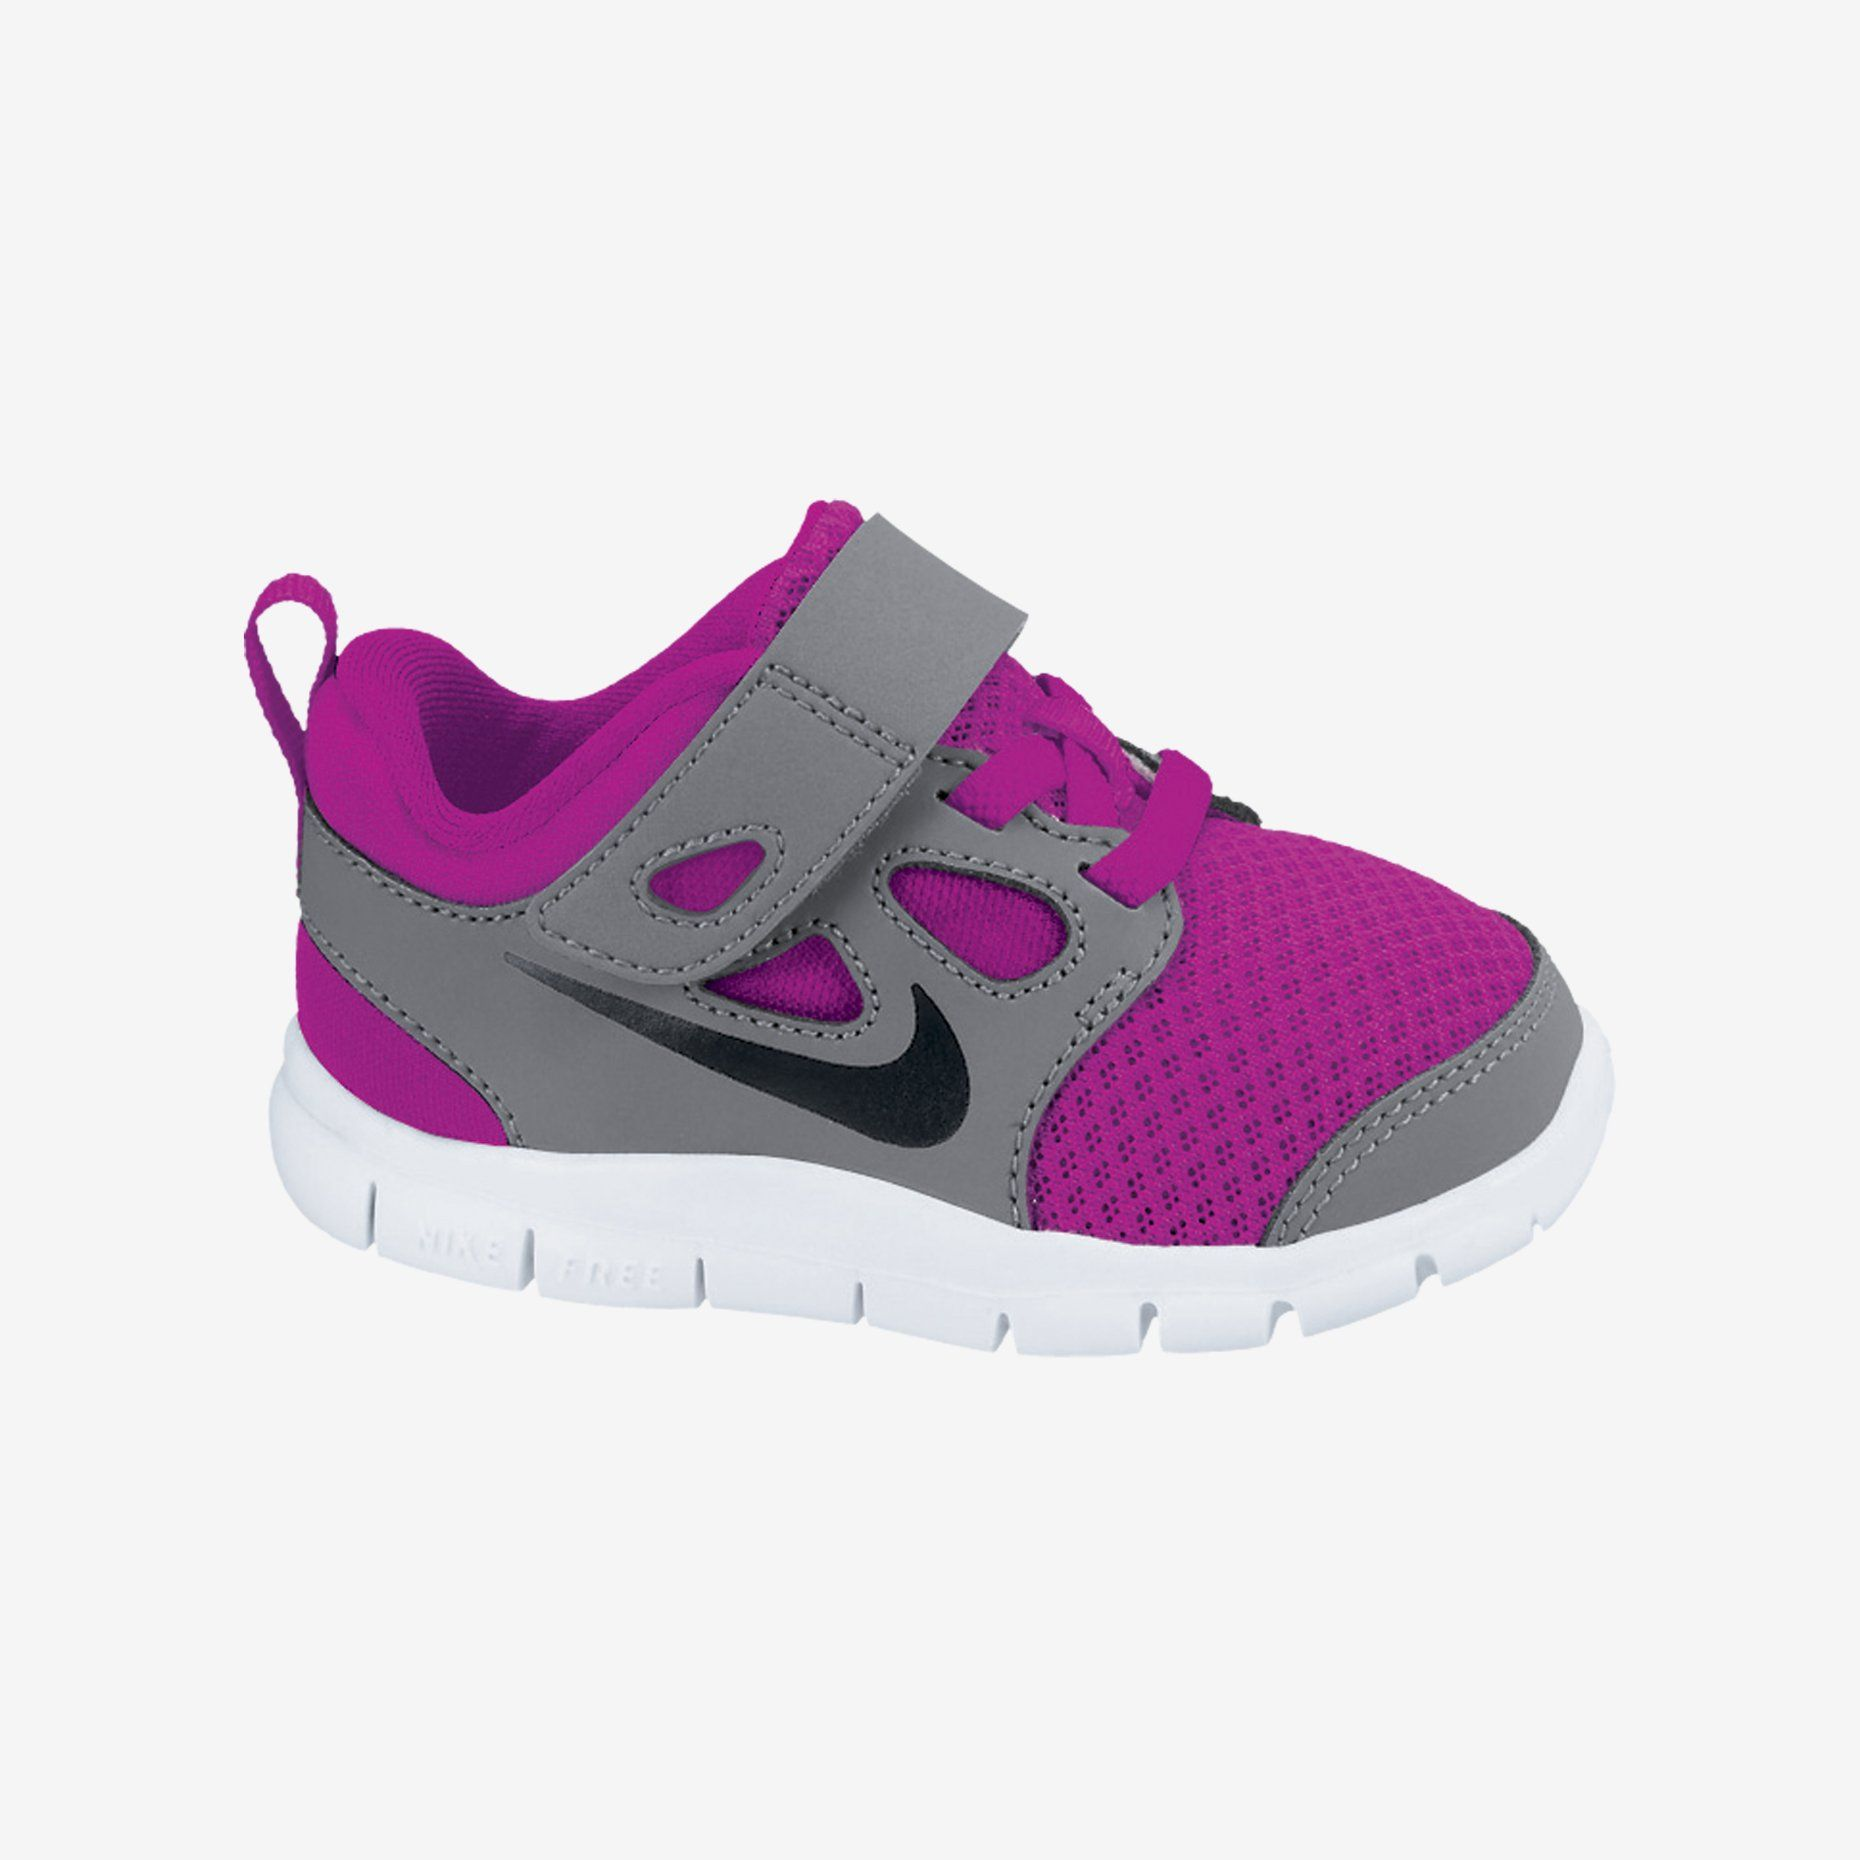 89d6eb99eea8 Nike Store. Nike Free 5.0 (2c-10c) Infant Toddler Girls  Running Shoe